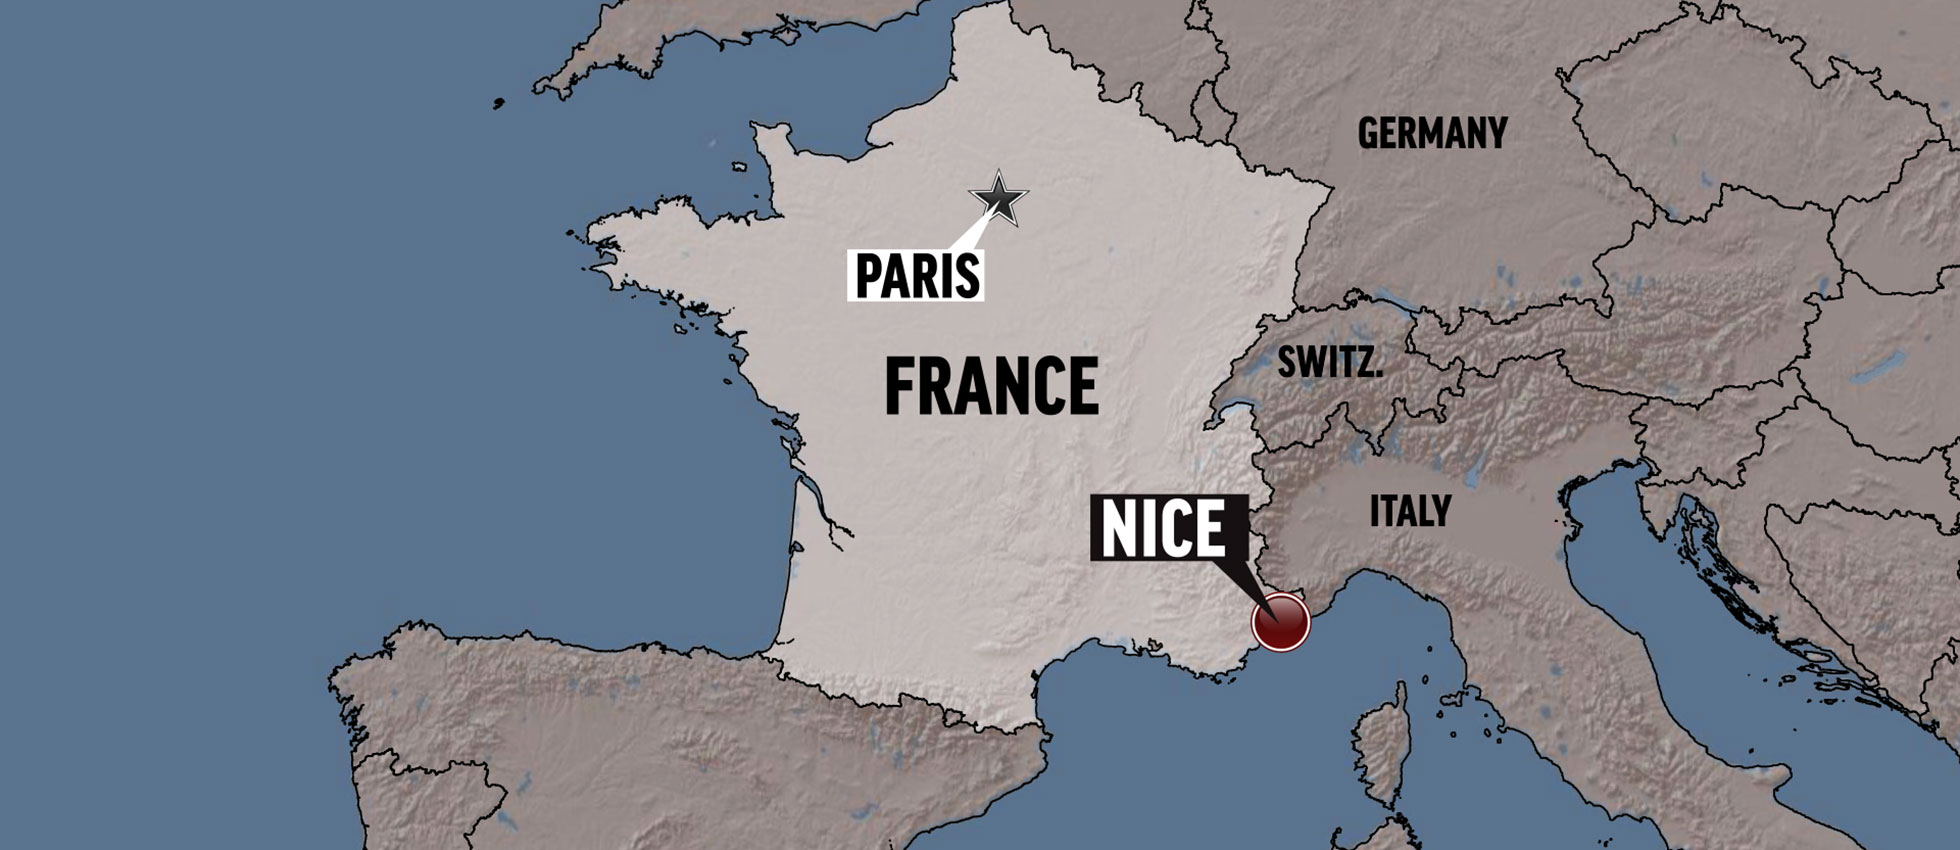 202 people wounded 25 on life support after attack in france gumiabroncs Choice Image